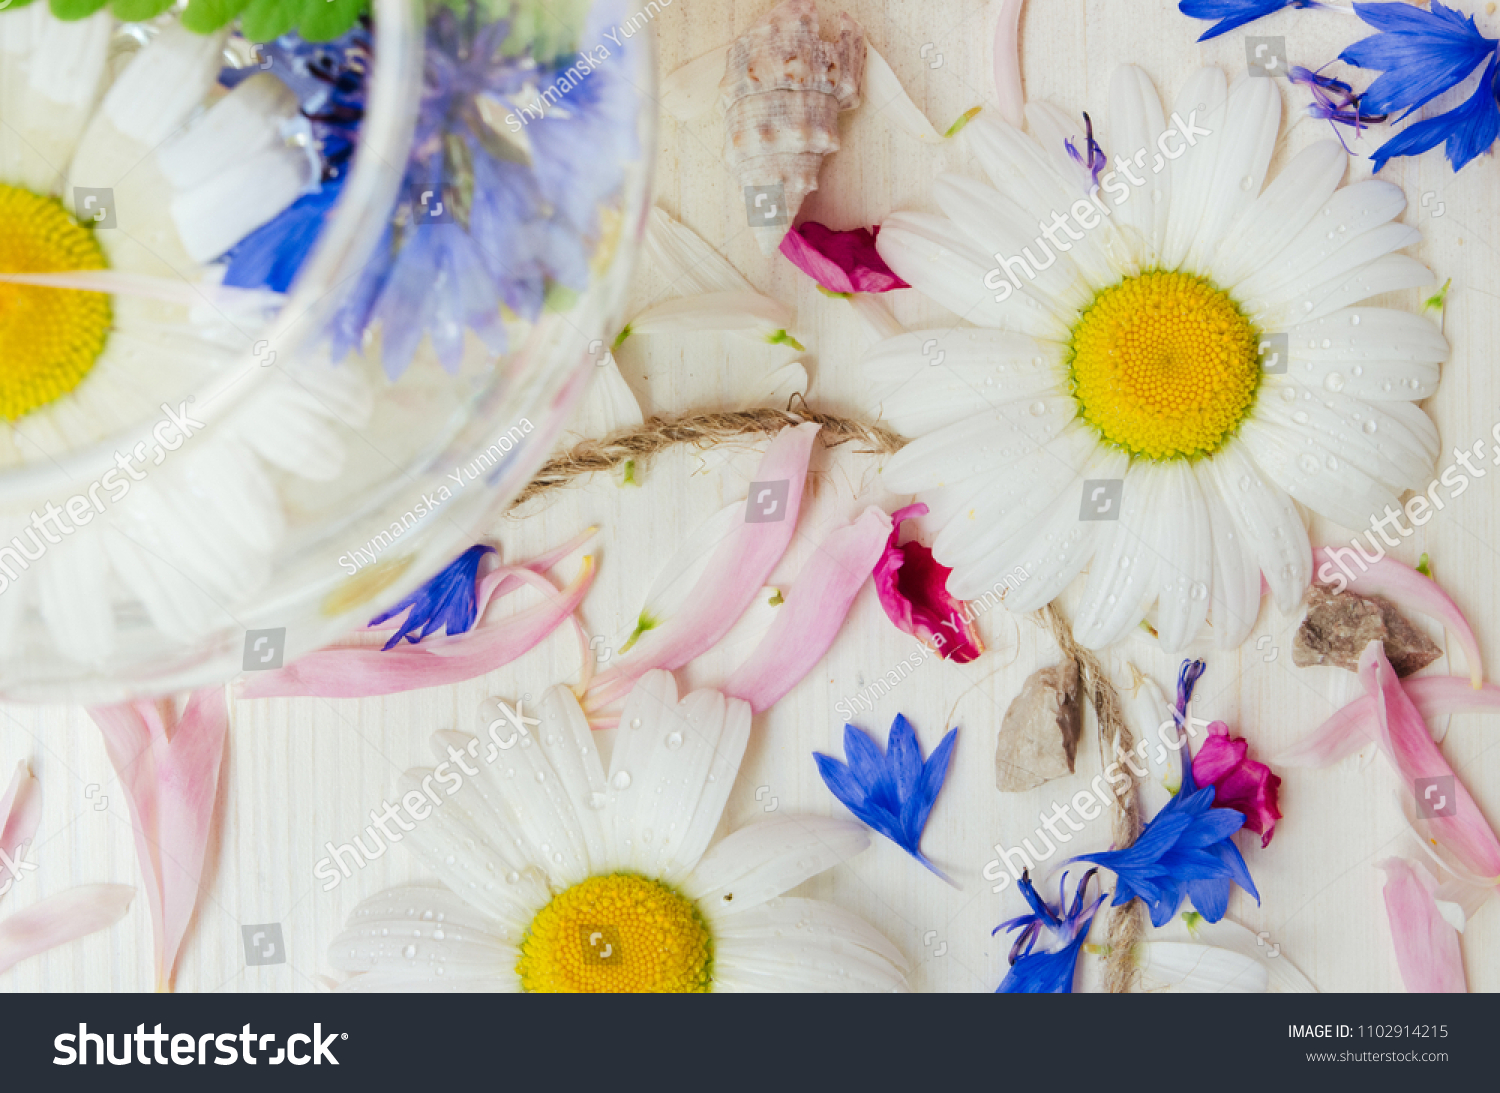 theme of the flowers